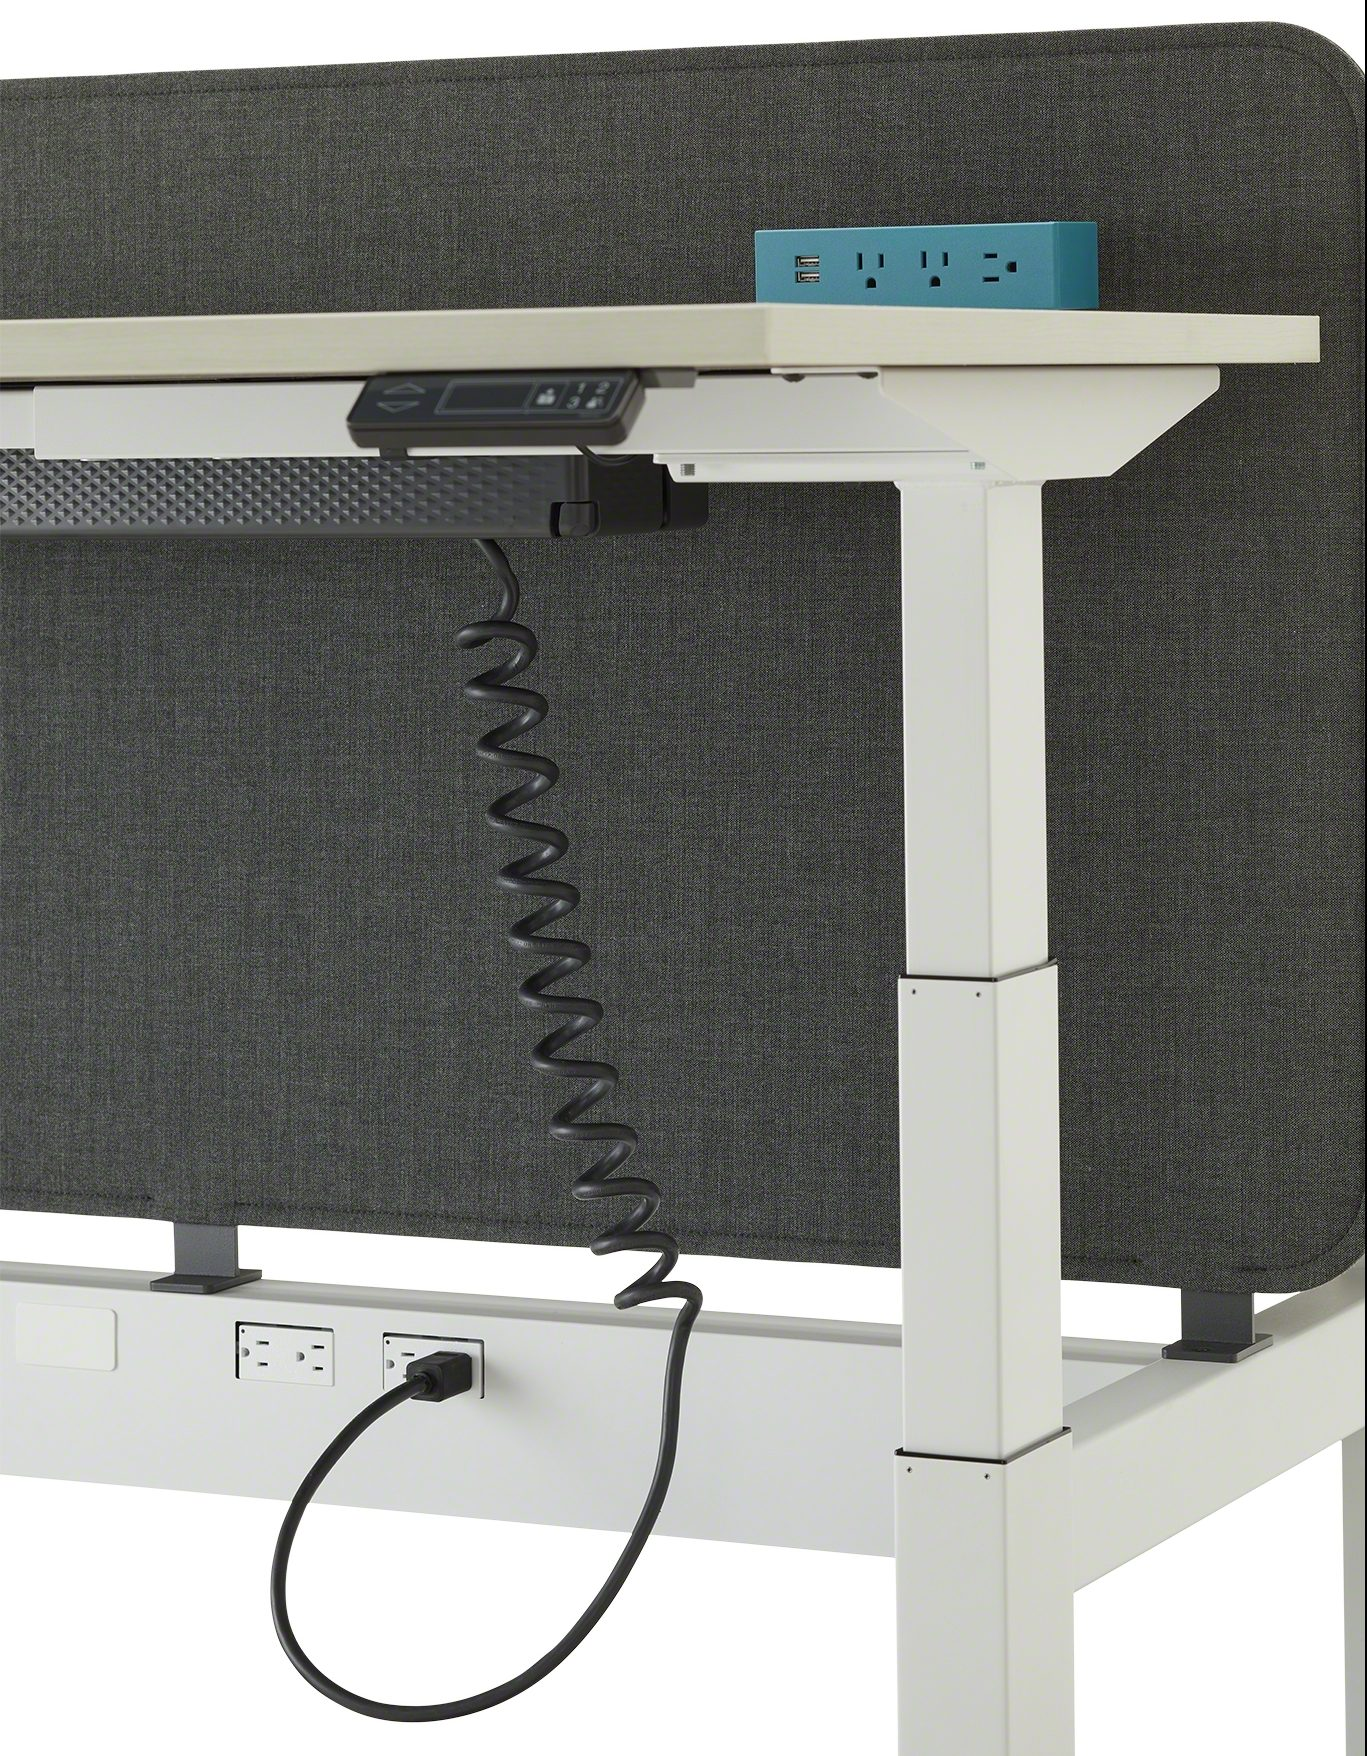 Steelcase Powerstrip Plus with Universal Cable Management Kit